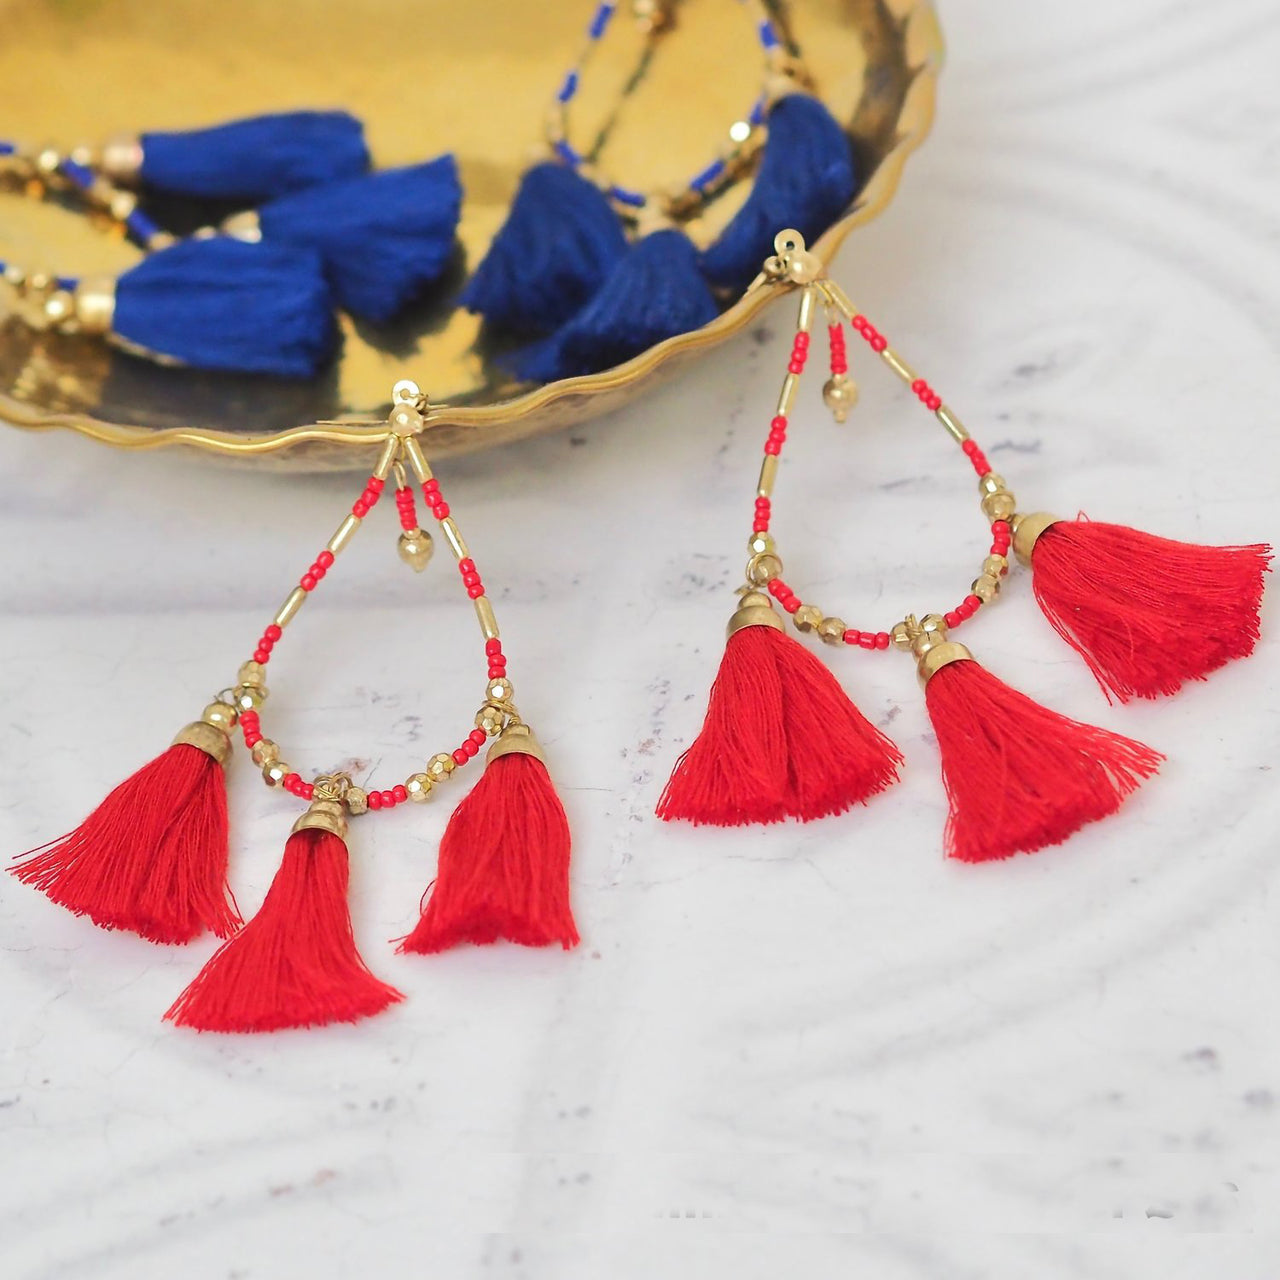 Bonnie Triple Tassel Earrings – Red